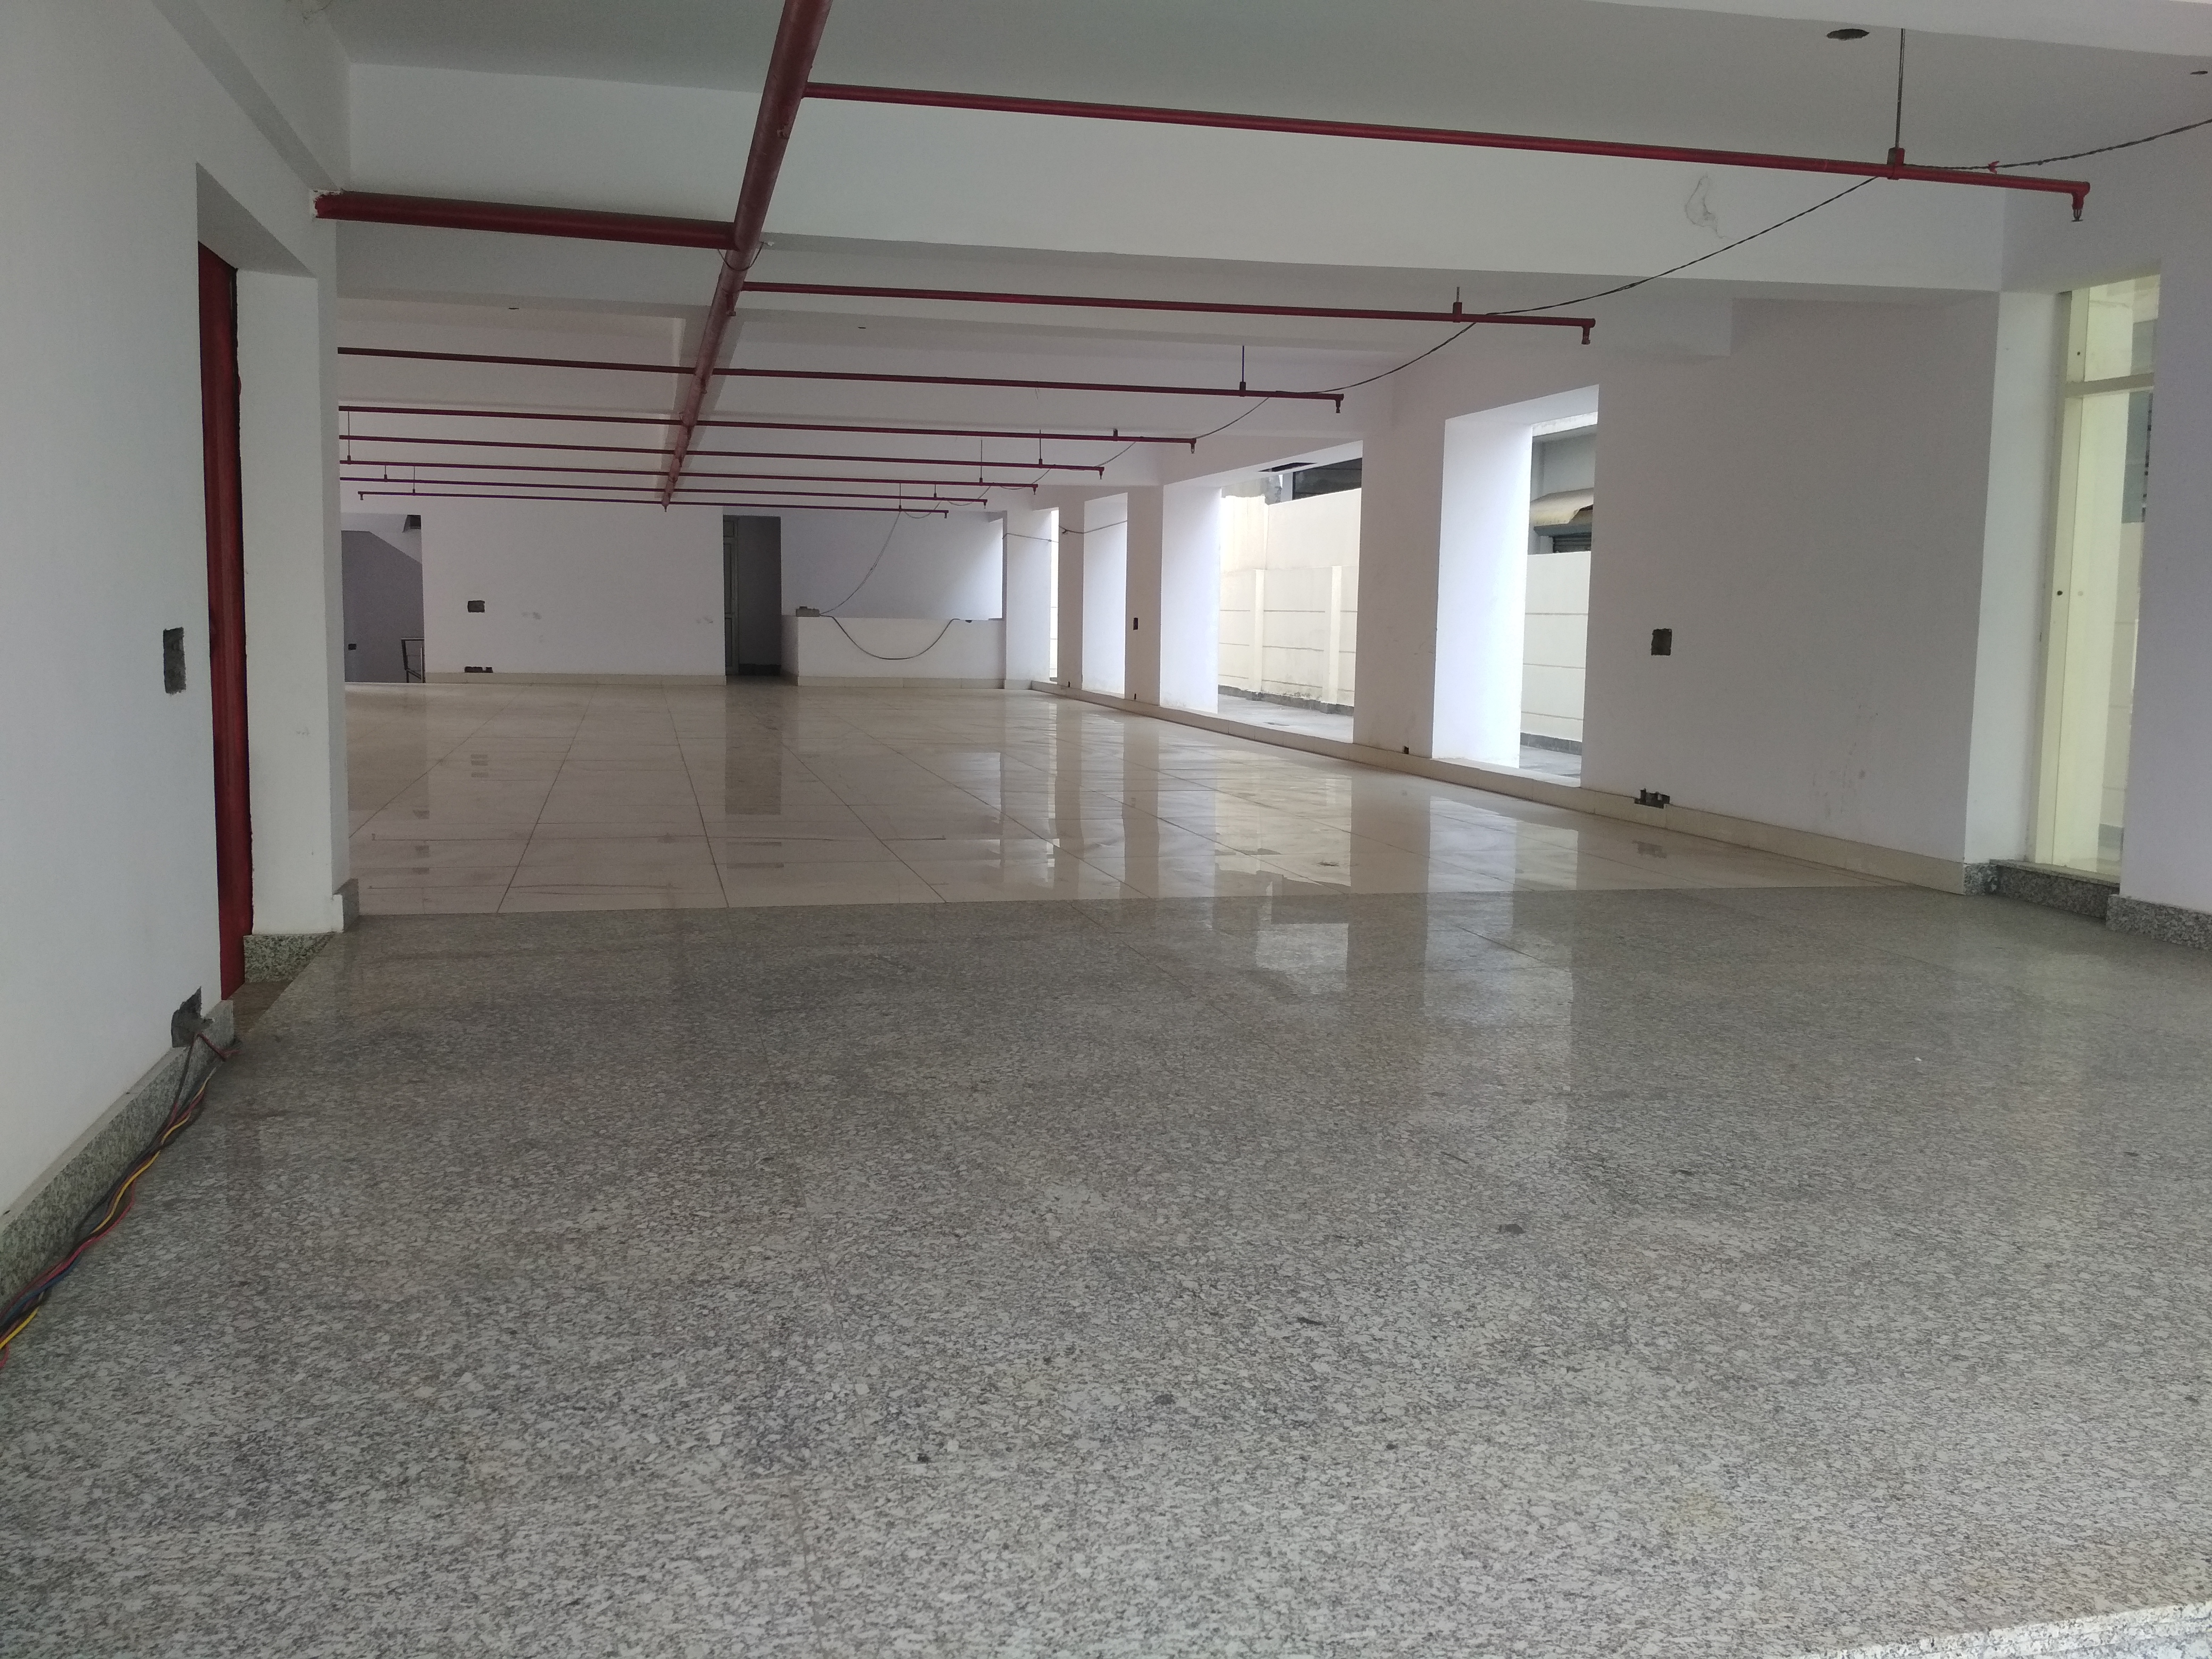 Expediently located unfurnished space with plug n play facility